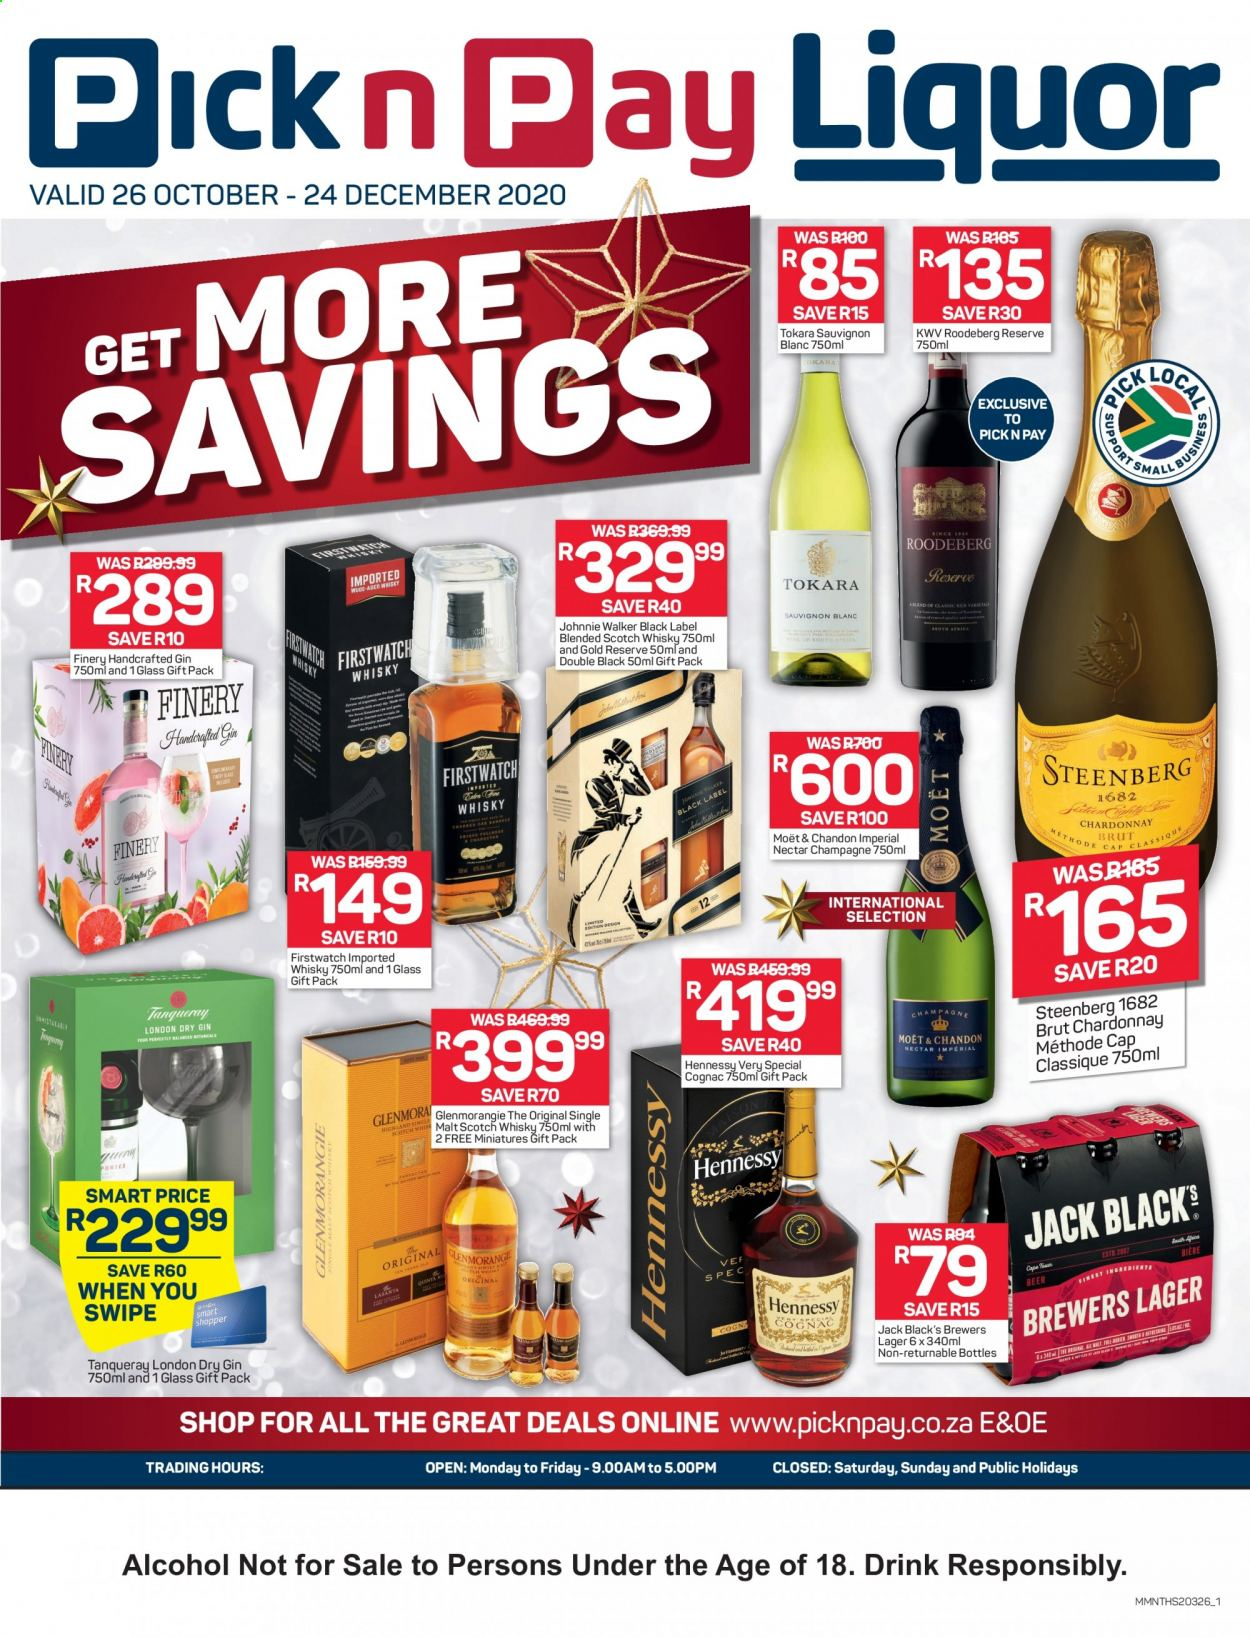 Pick n Pay catalogue  - 10.26.2020 - 12.24.2020 - Sales products - cognac, gin, whisky, champagne, drink, hennessy, moët & chandon, sauvignon, brewers. Page 1.